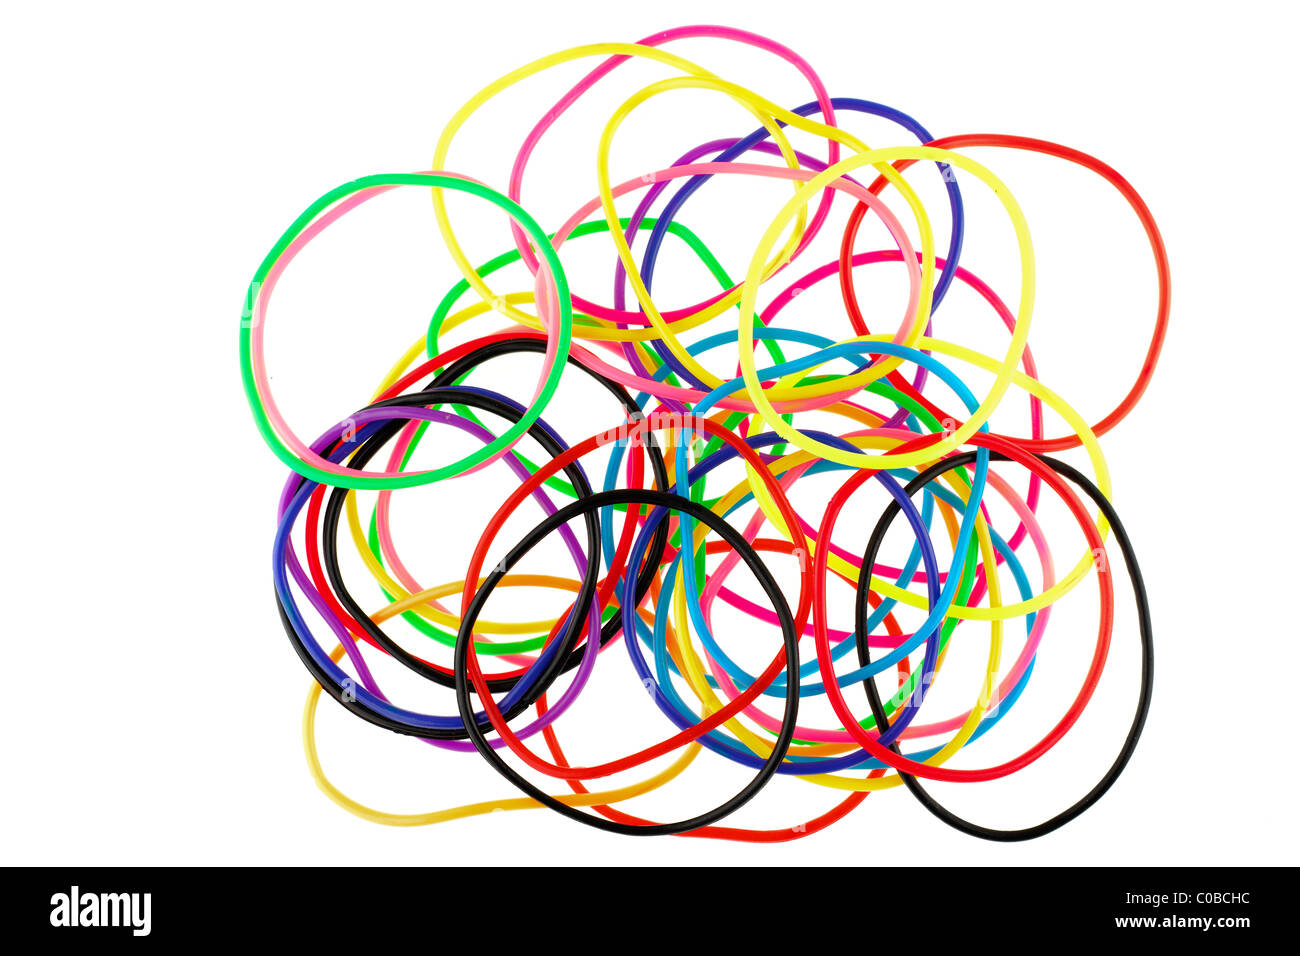 Pile of multicoloured rubber friendship bands - Stock Image